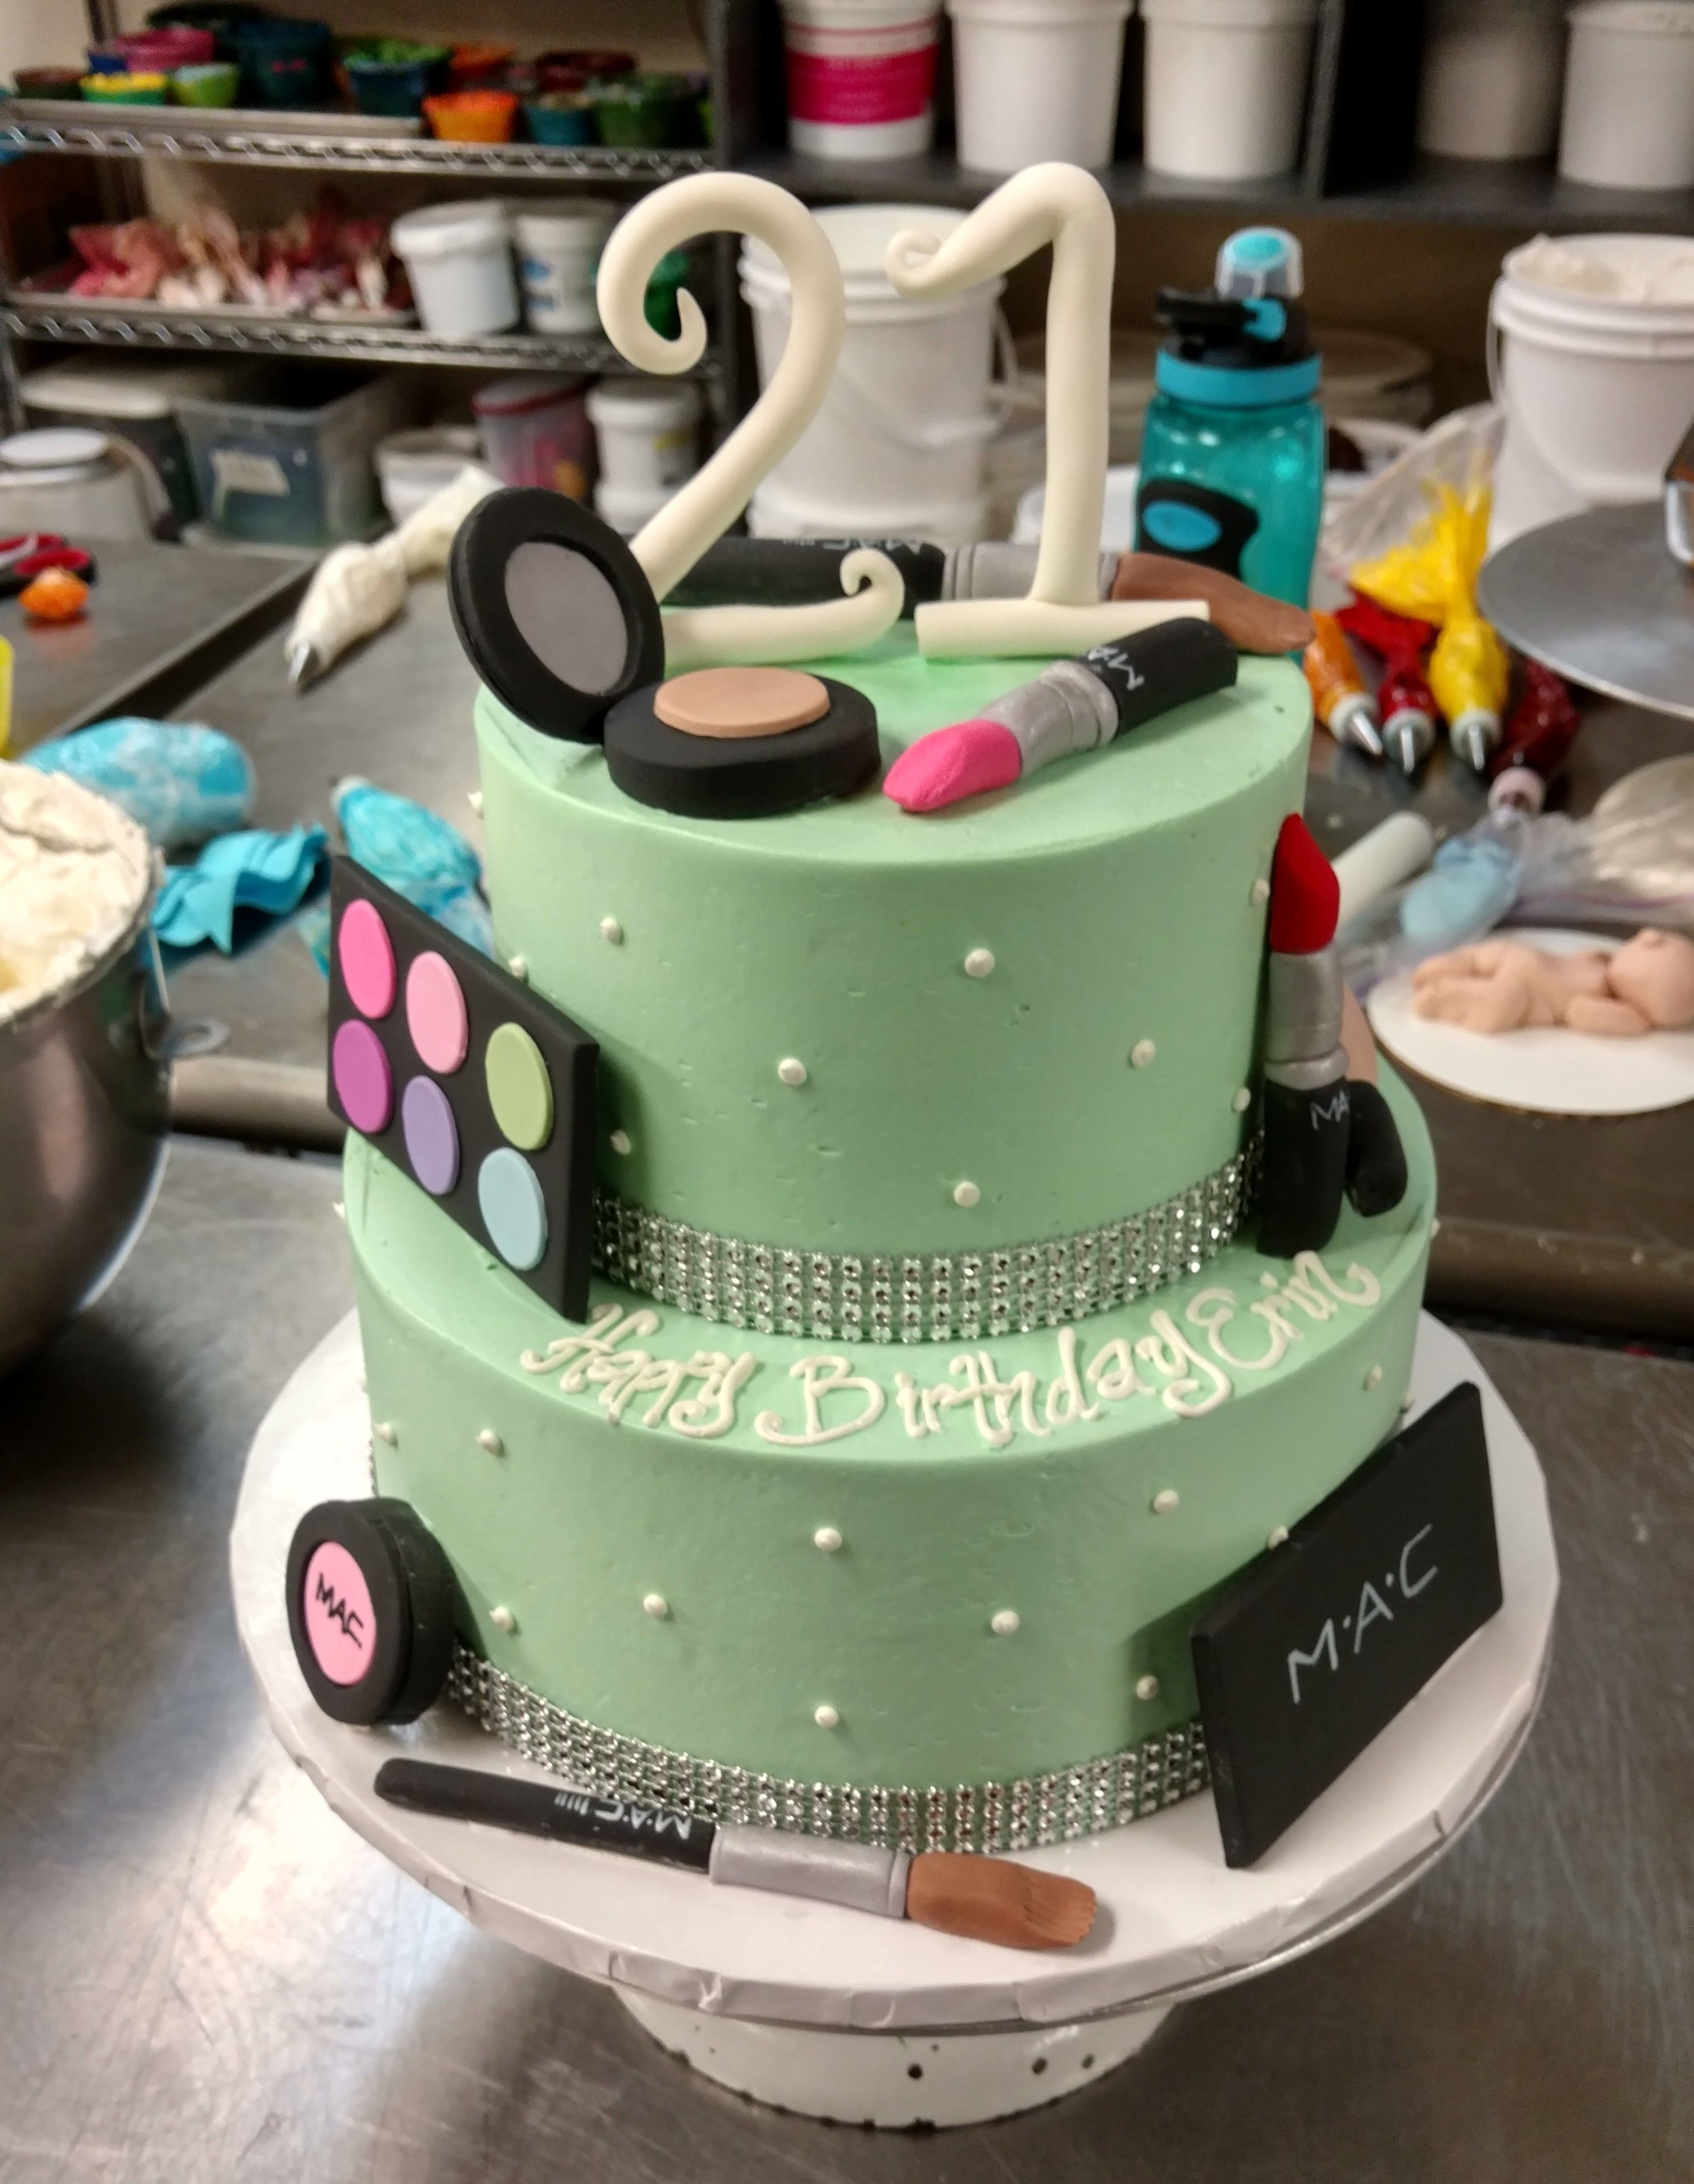 A blingy two tier cake covered in fondant makeup and